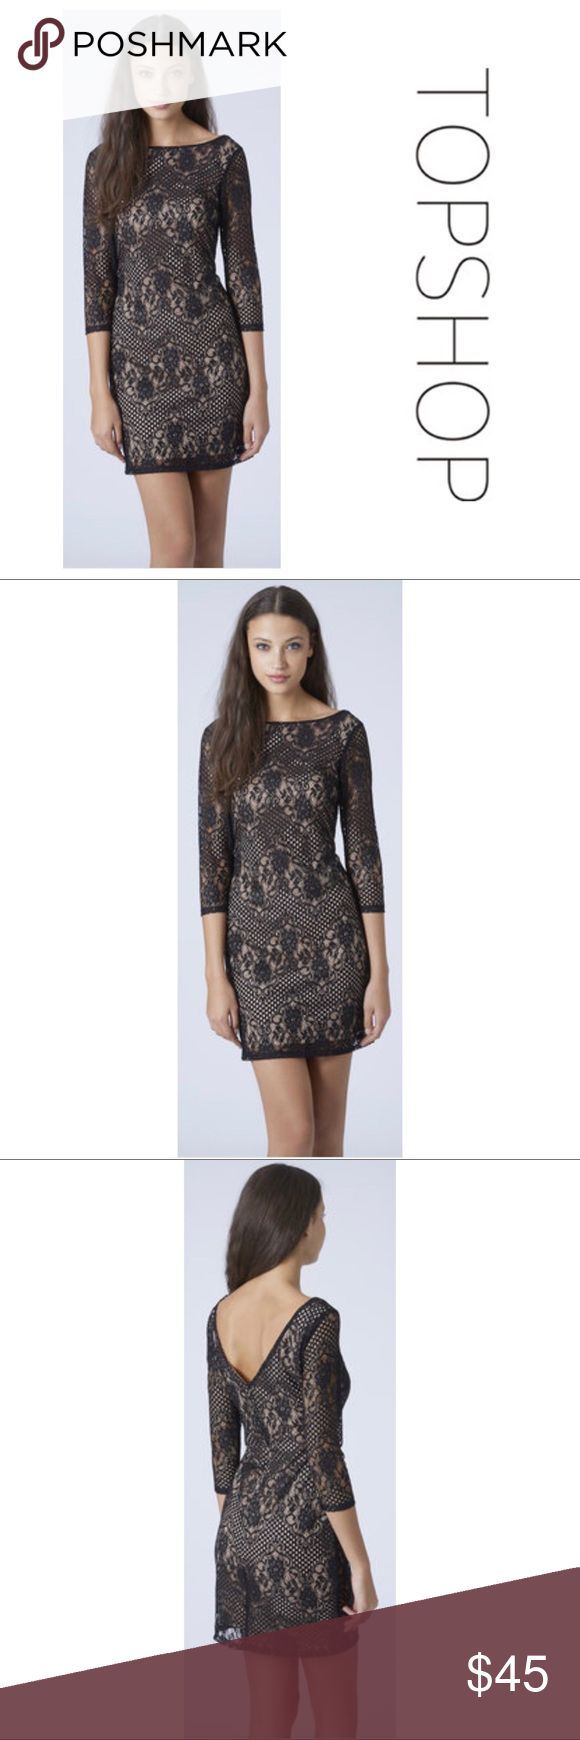 Topshop Lace Overlay BodyCon Dress Size 12 Topshop Lace Overlay BodyCon Dress Size 12 is brand new and has never been worn! Beautiful Lace overlay is elegant and classy. Can be worn to any event and looks amazing when paired with strappy heels or stilettos! Features Sheer Lace arms and hidden zipper back as well as a deep V back. Size 12 Topshop Dresses Long Sleeve